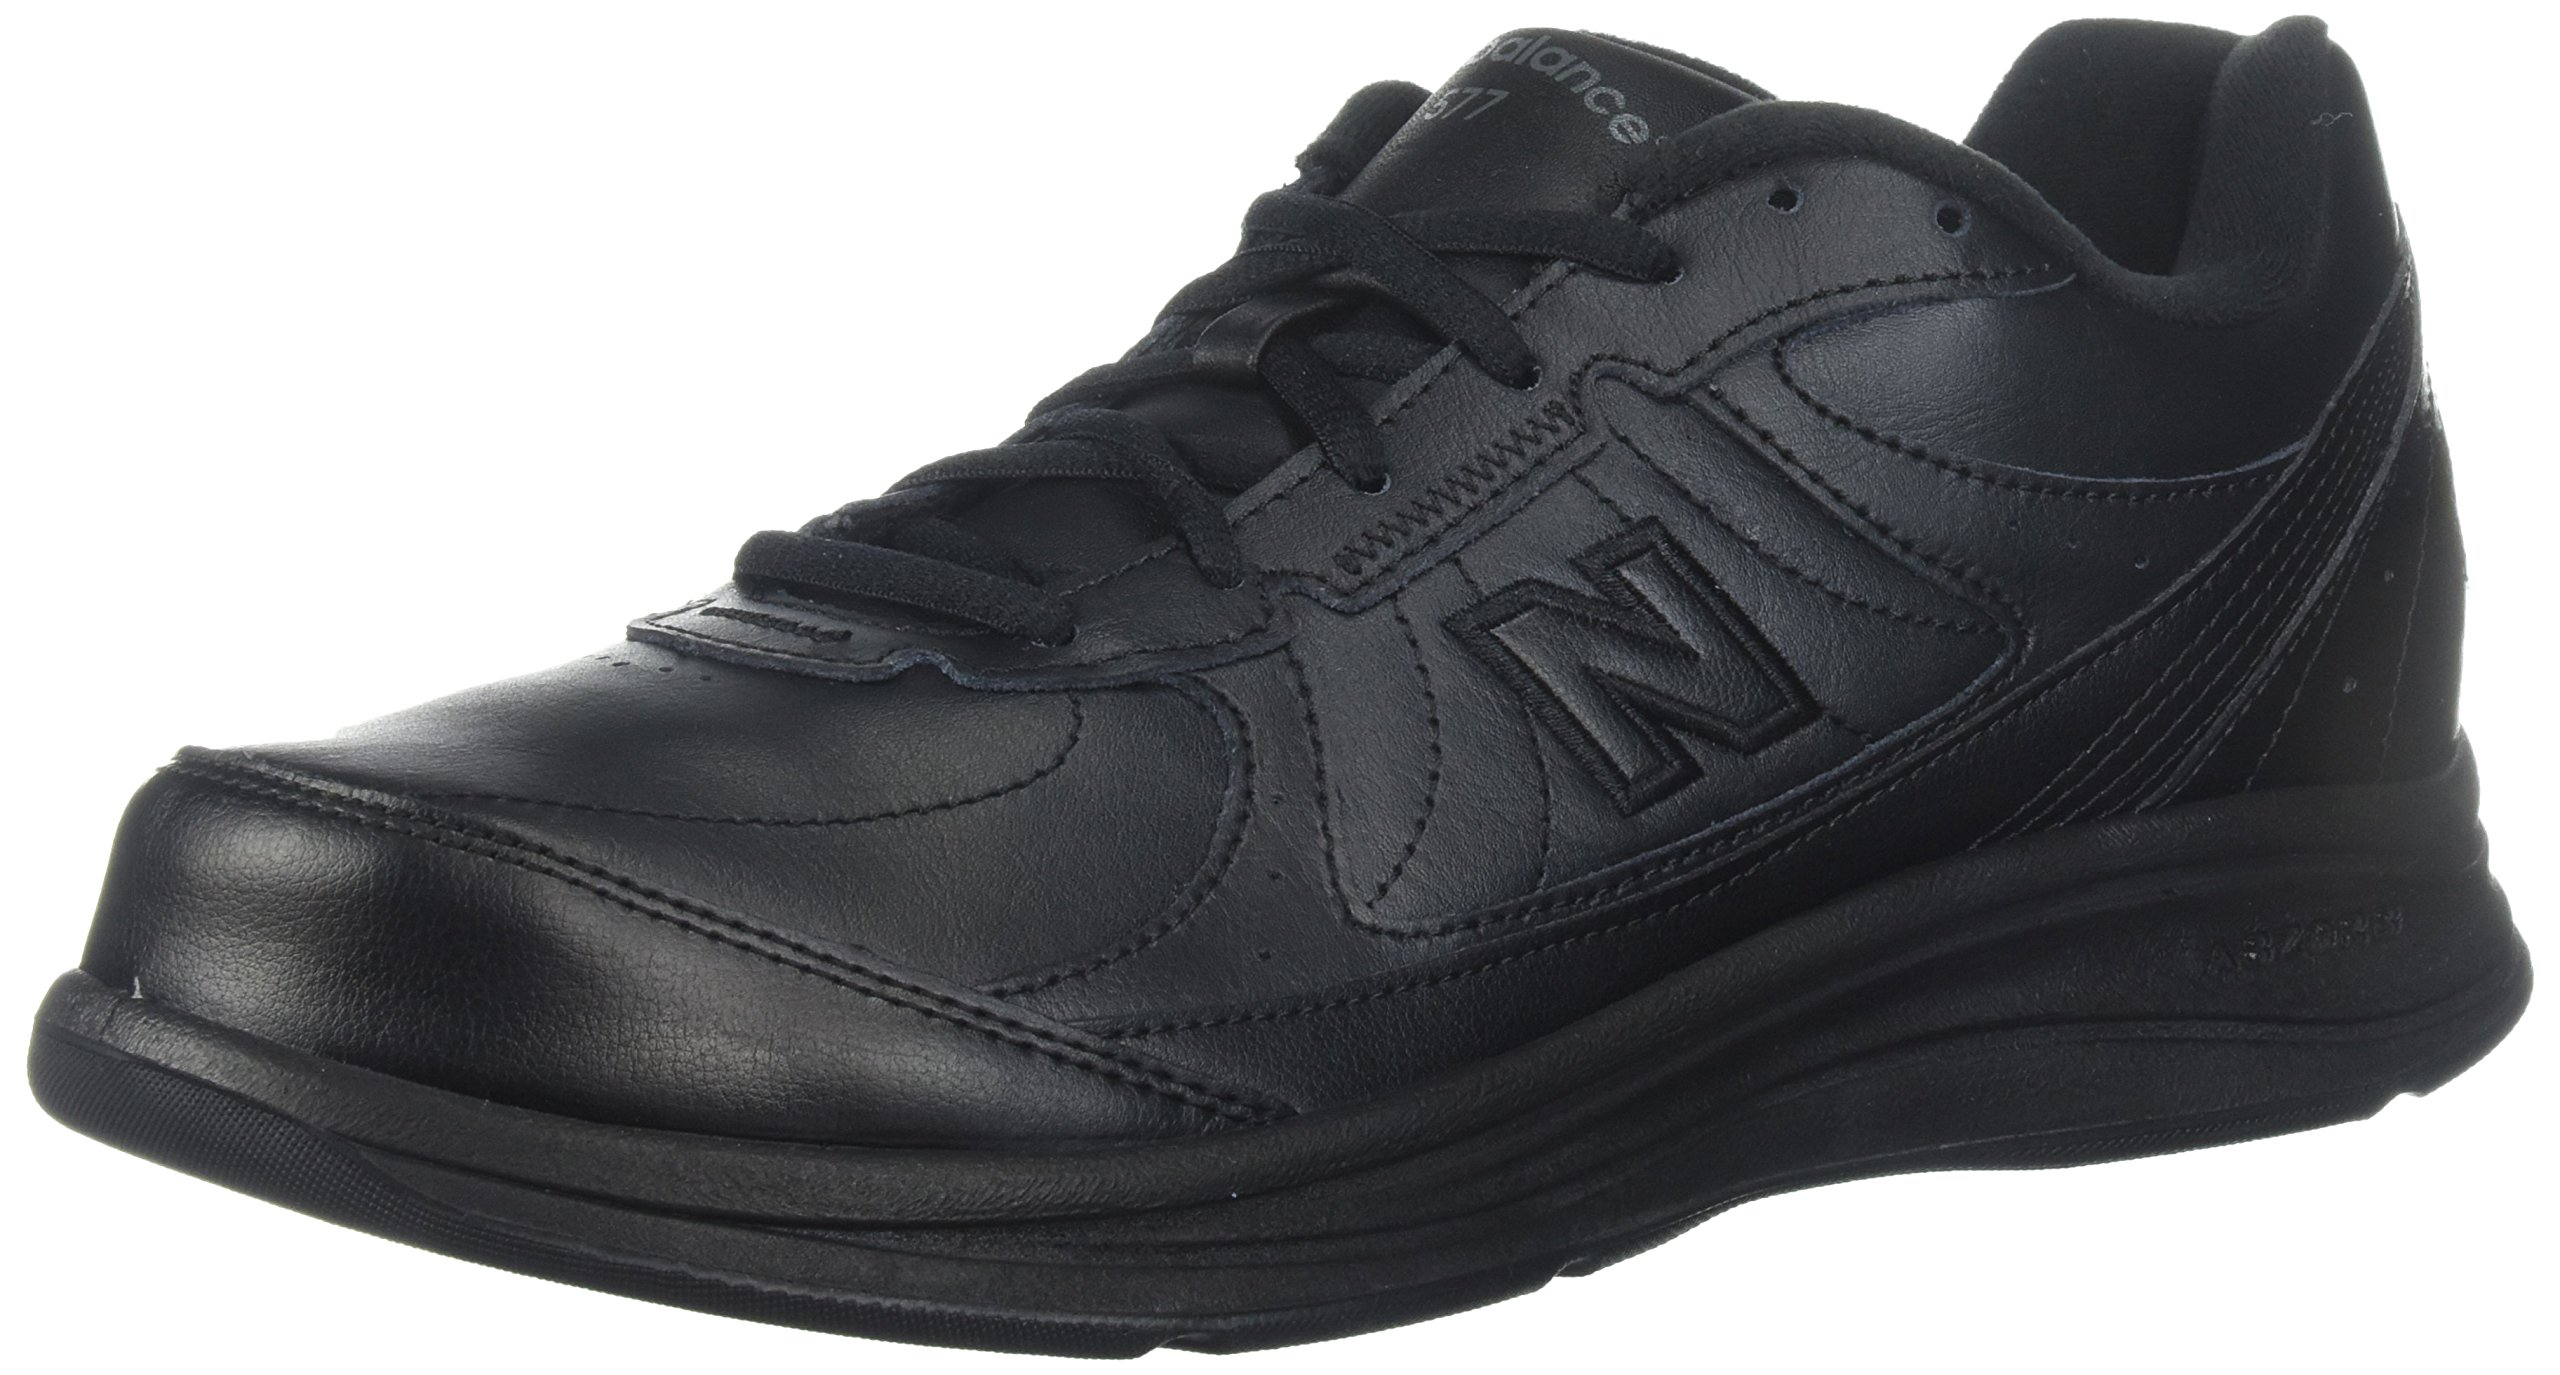 New Balance Men's MW577 Black Walking Shoe - 9.5 4E US